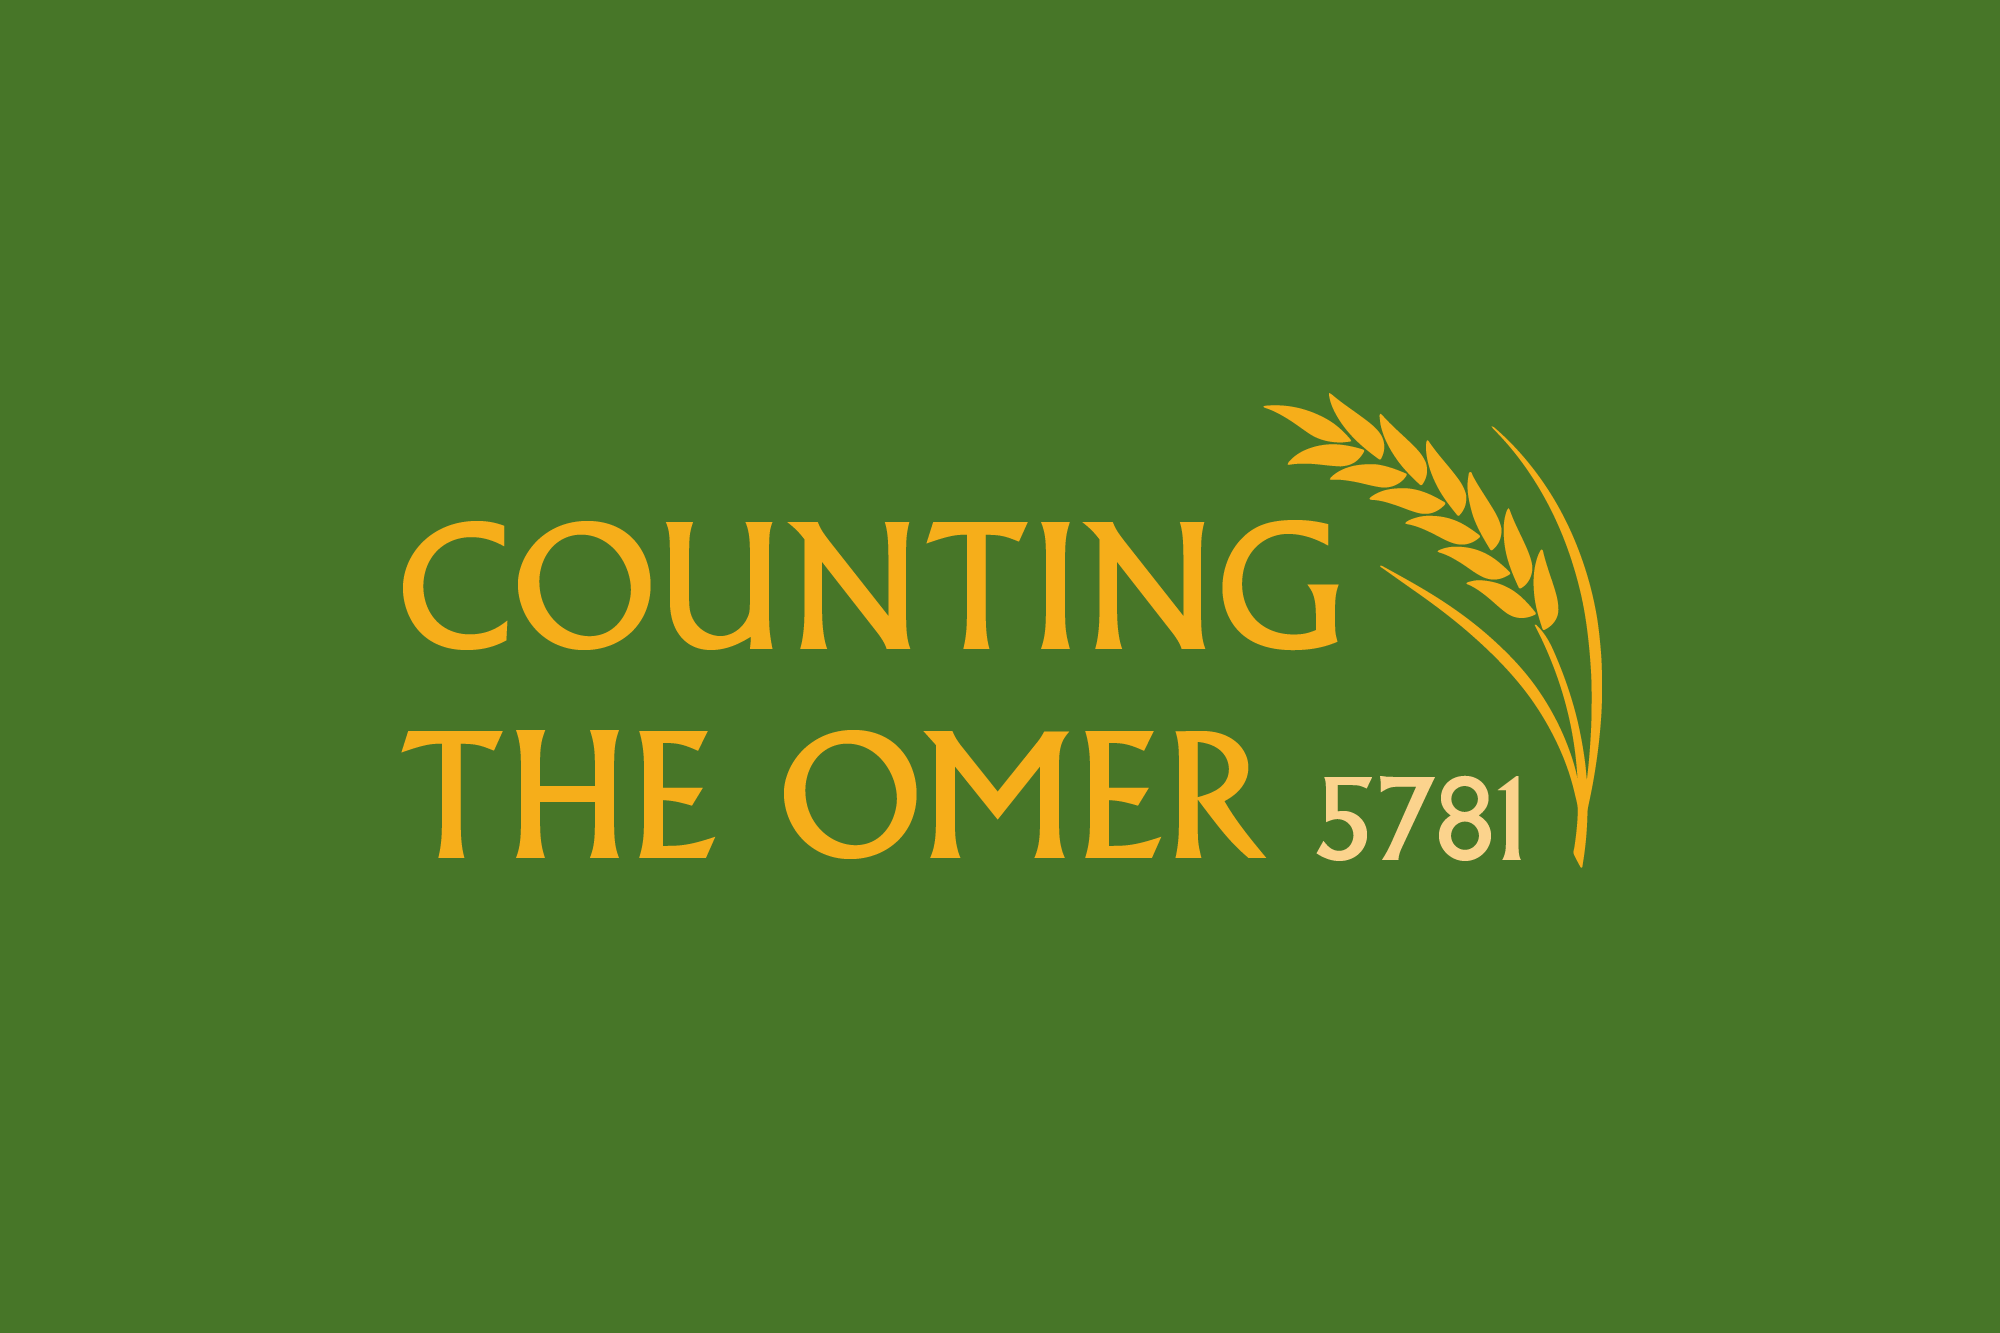 Counting the Omer 5781